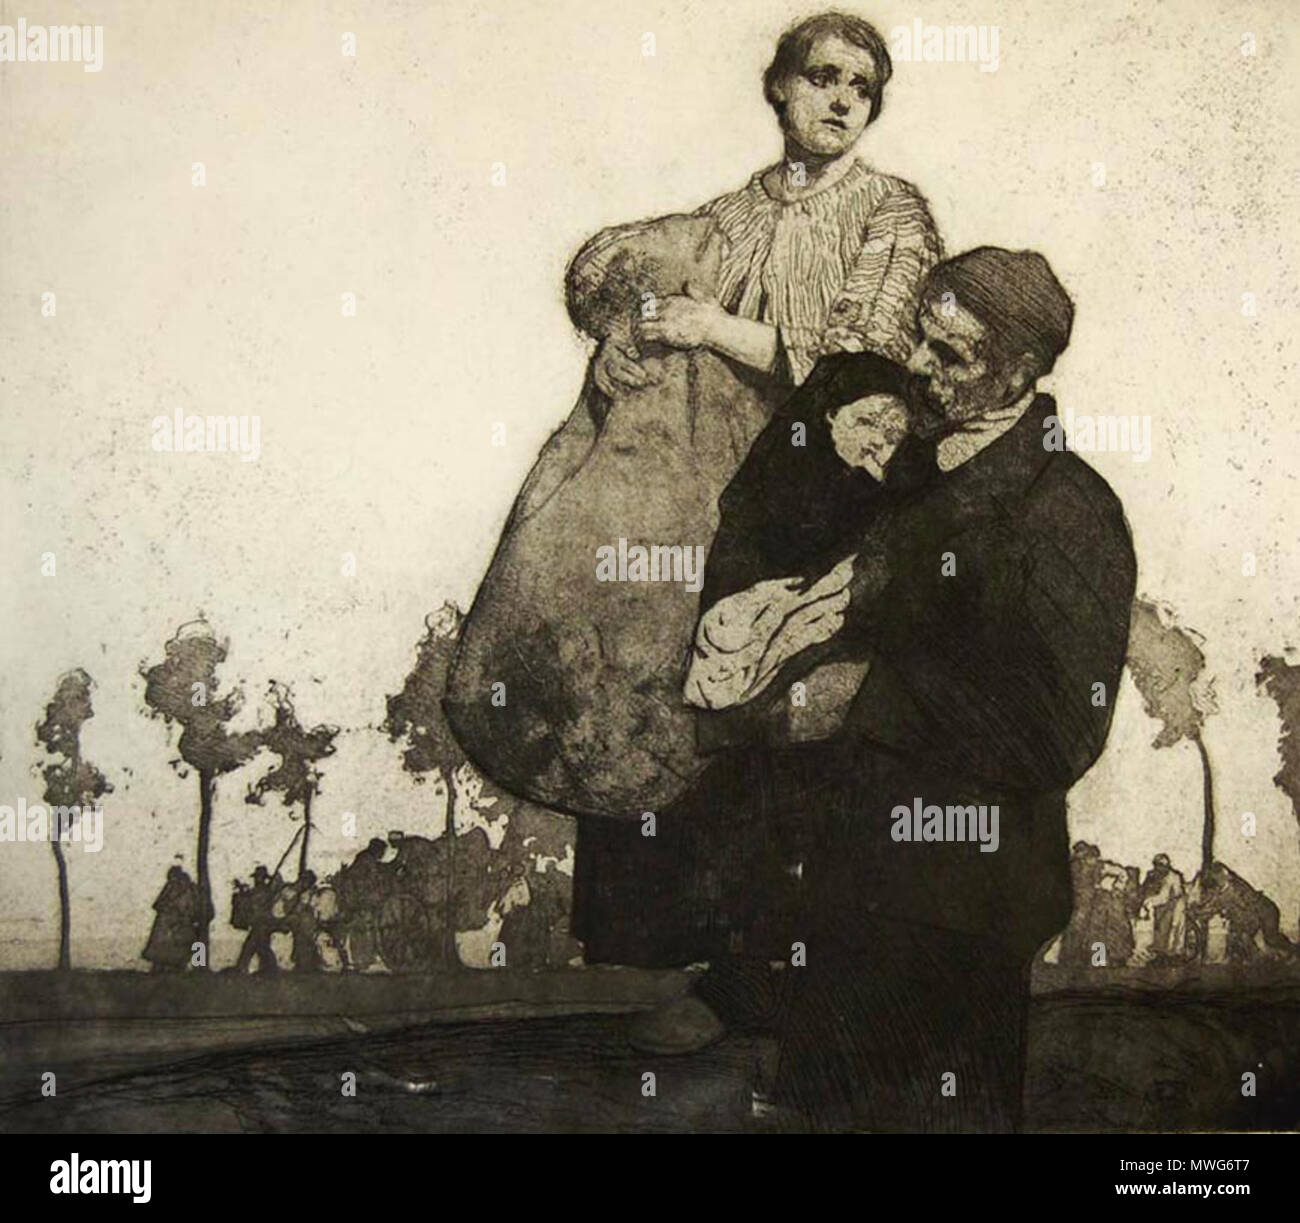 . English: 'The Refugees', an etching based on William Lee Hankey's observations just behind the front line at Étaples in 1914 . 19 February 2012. William Lee Hankey 365 Leehankey refugees - Stock Image